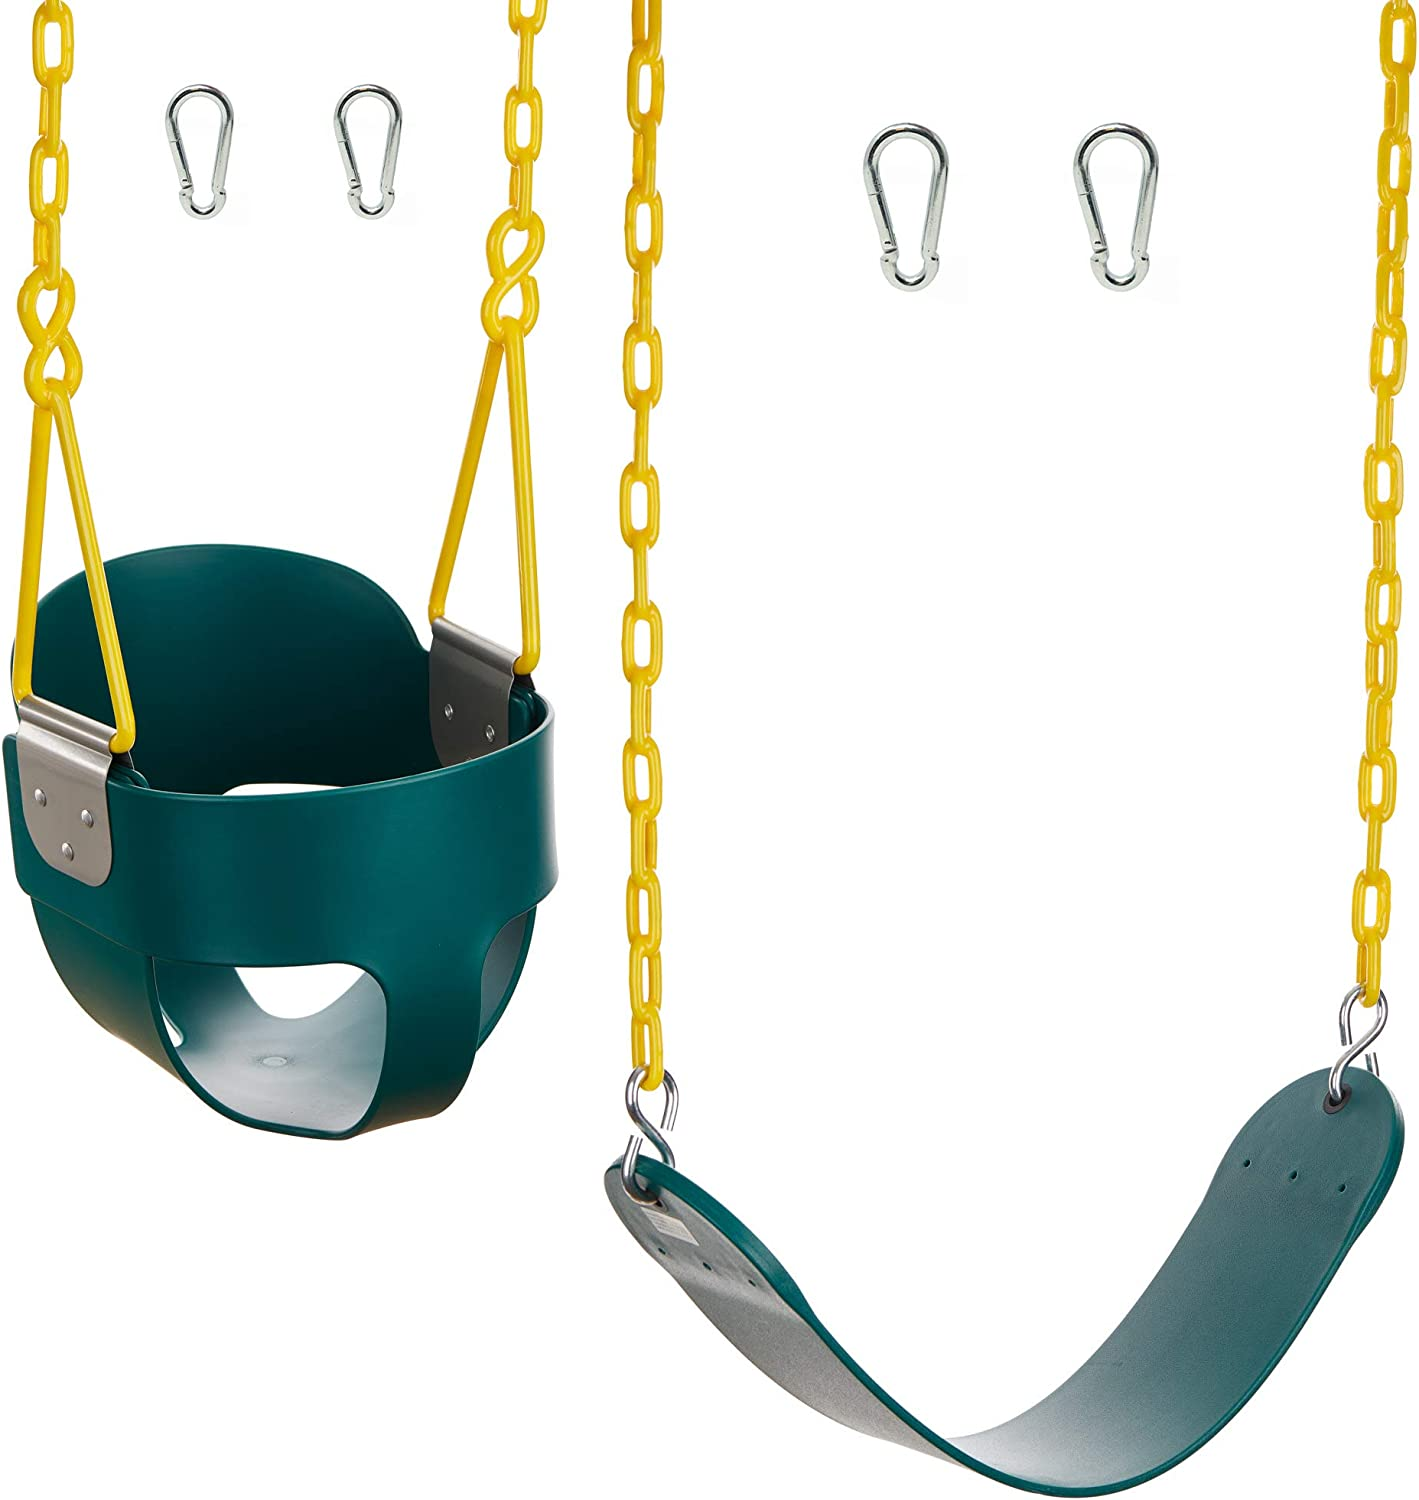 and Heavy-Duty Swing Seat with Carabiners- Green High Back Full Bucket Swing Triangle and Chain Dip Squirrel Products Combo